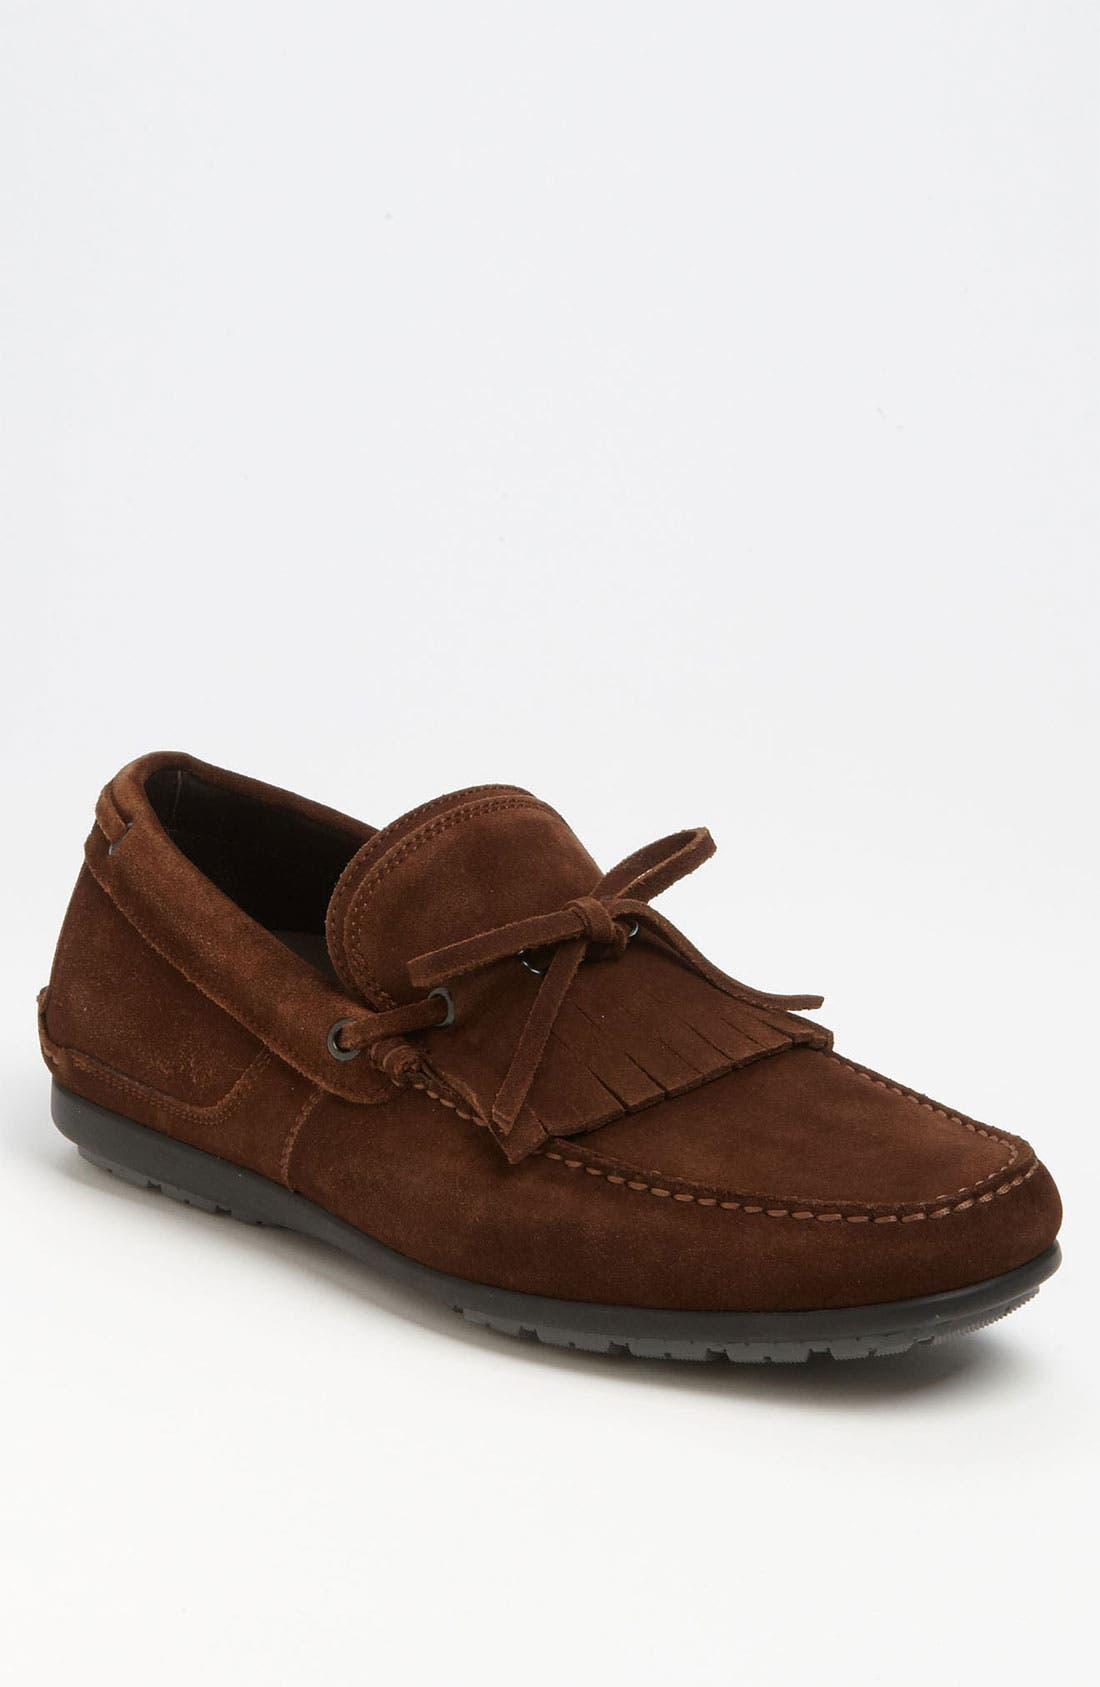 Alternate Image 1 Selected - Salvatore Ferragamo 'Albero' Kiltie Driving Shoe